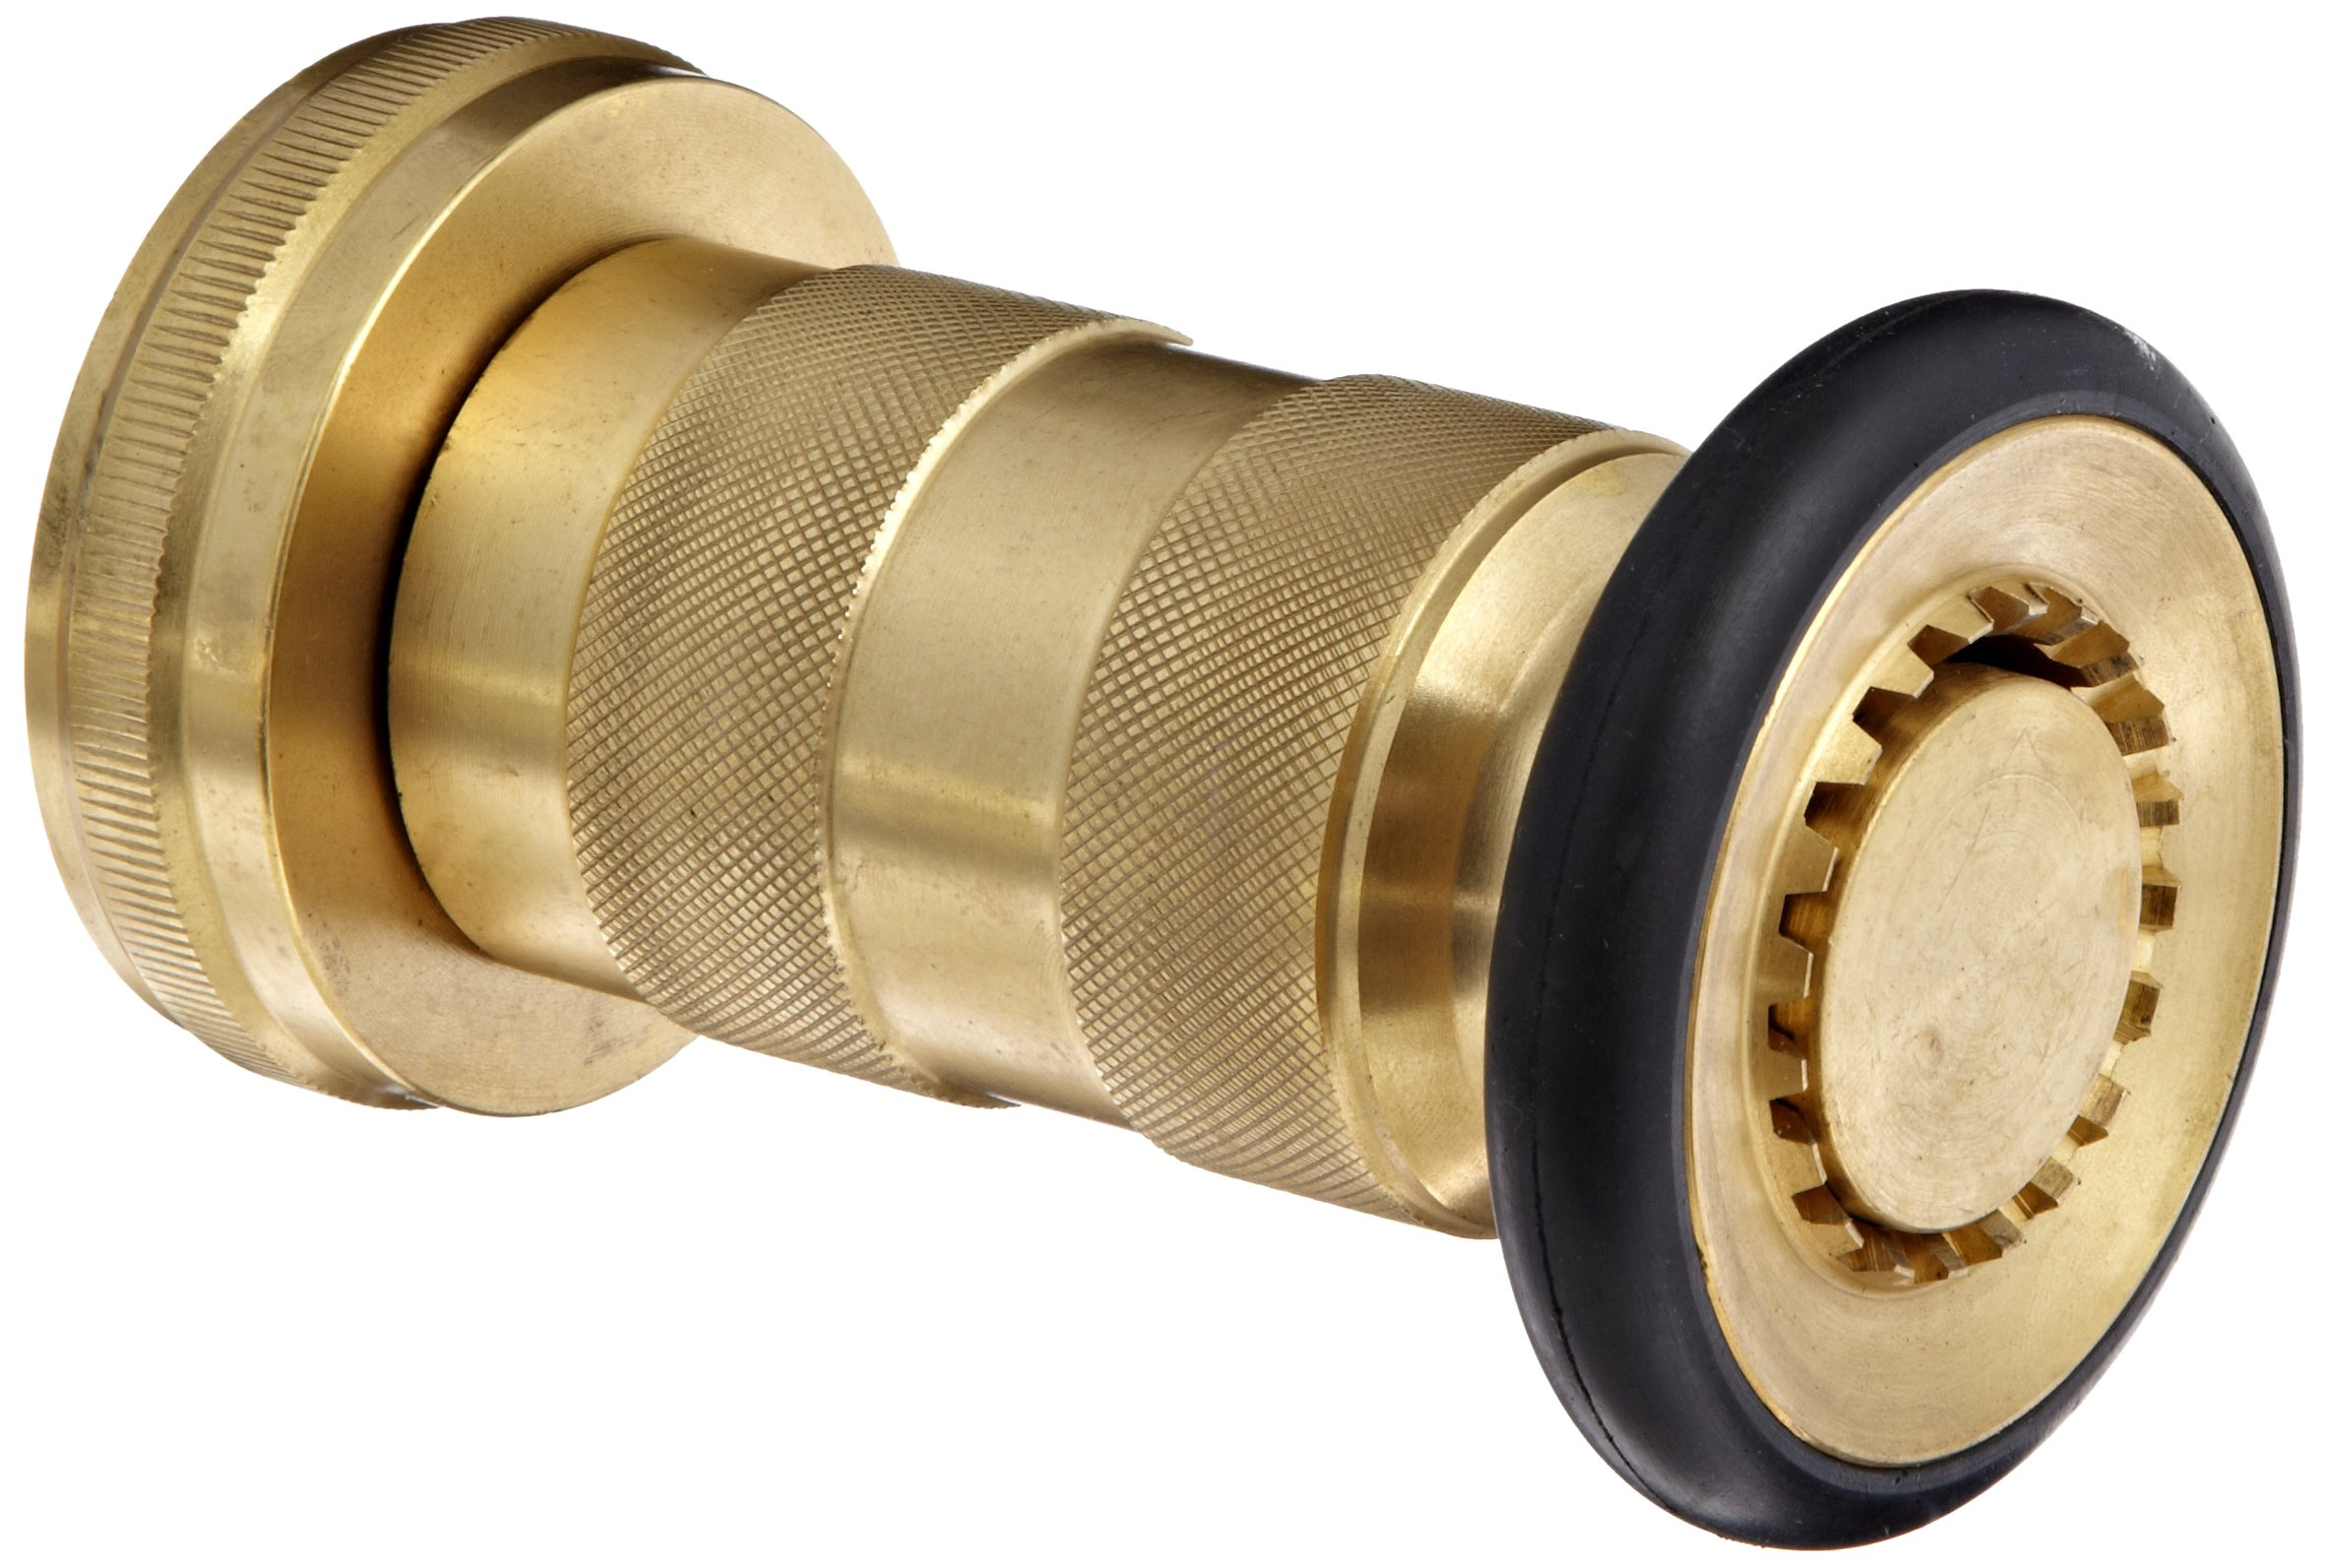 Moon 520-2011 Brass Fire Hose Nozzle, Heavy Duty Industrial Fog, 108 gpm, 2'' NPSH by Moon